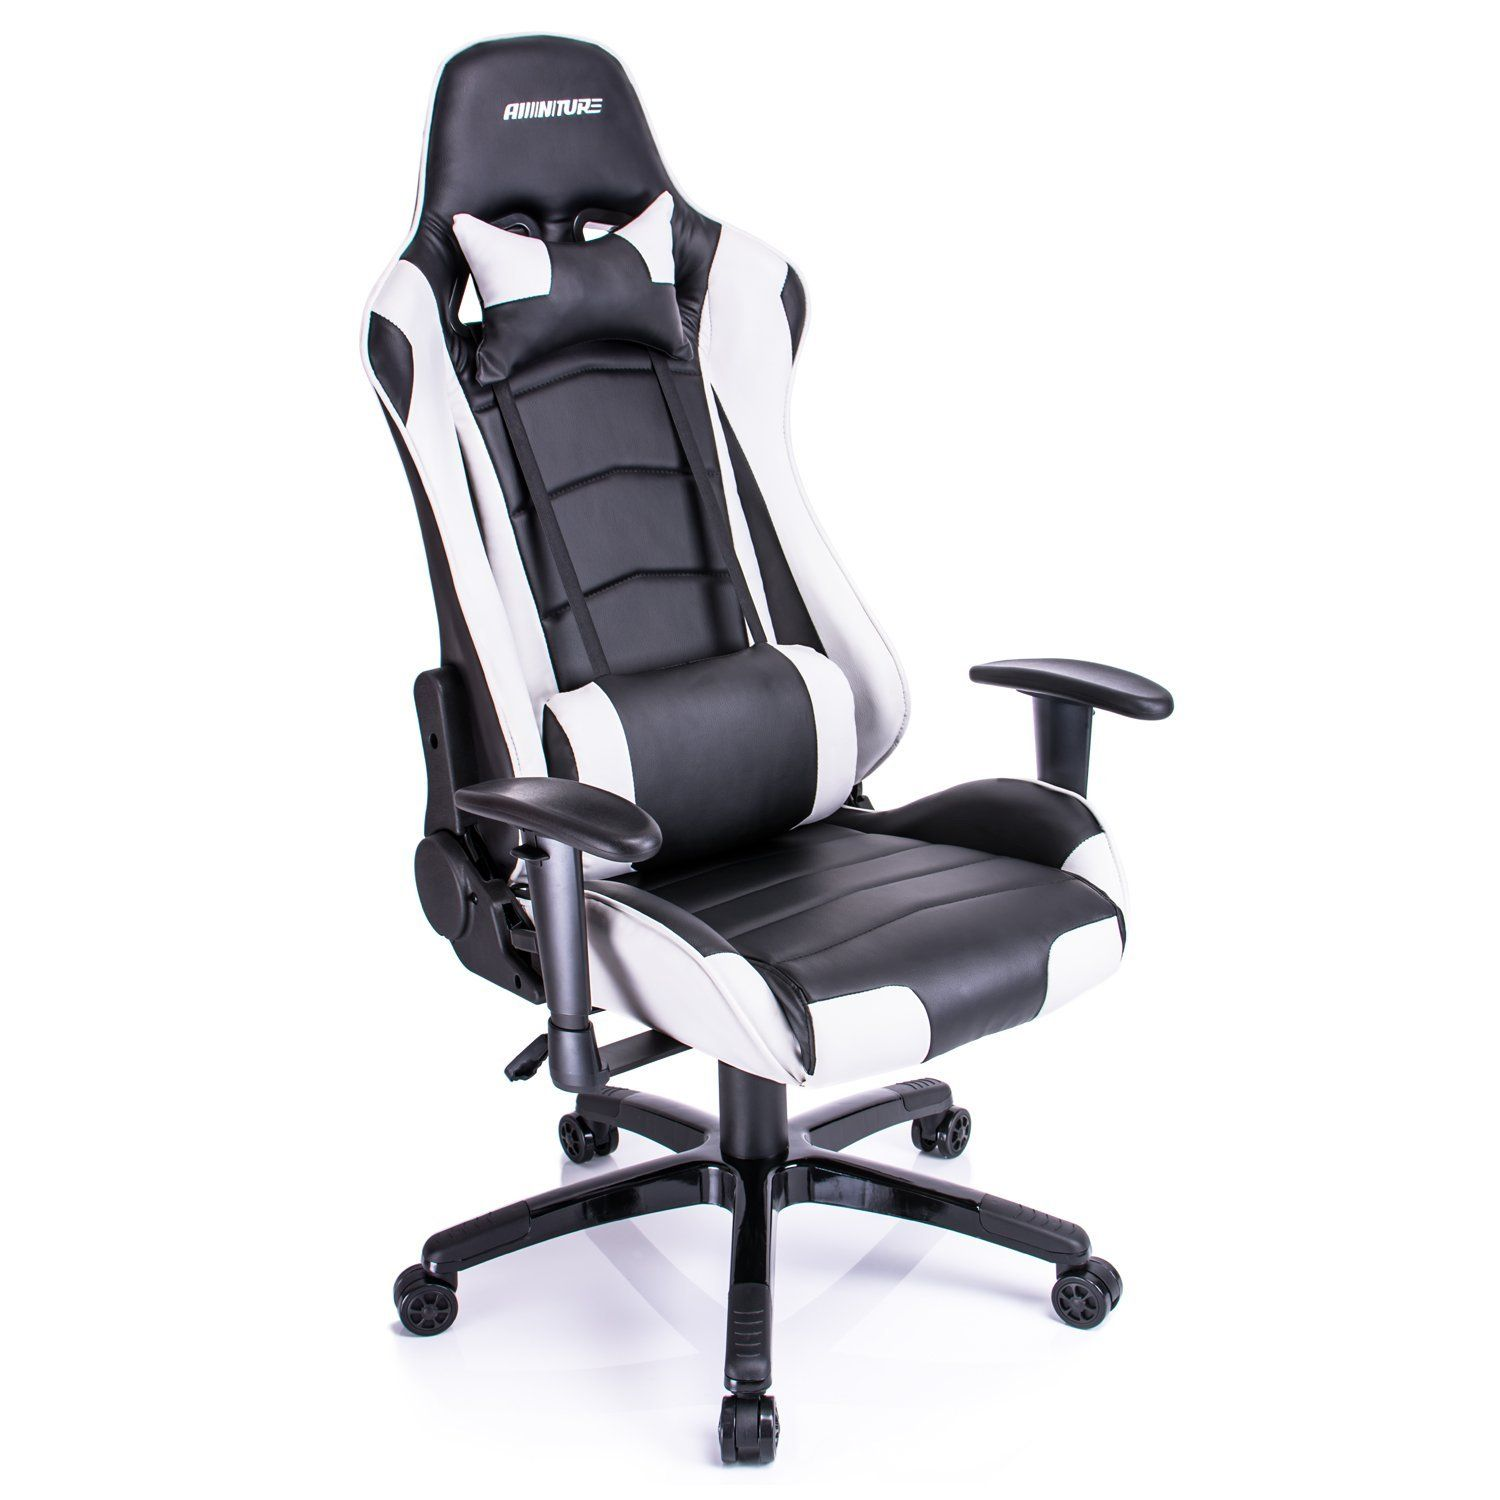 amazon: aminitrue high-back gaming chair racing style